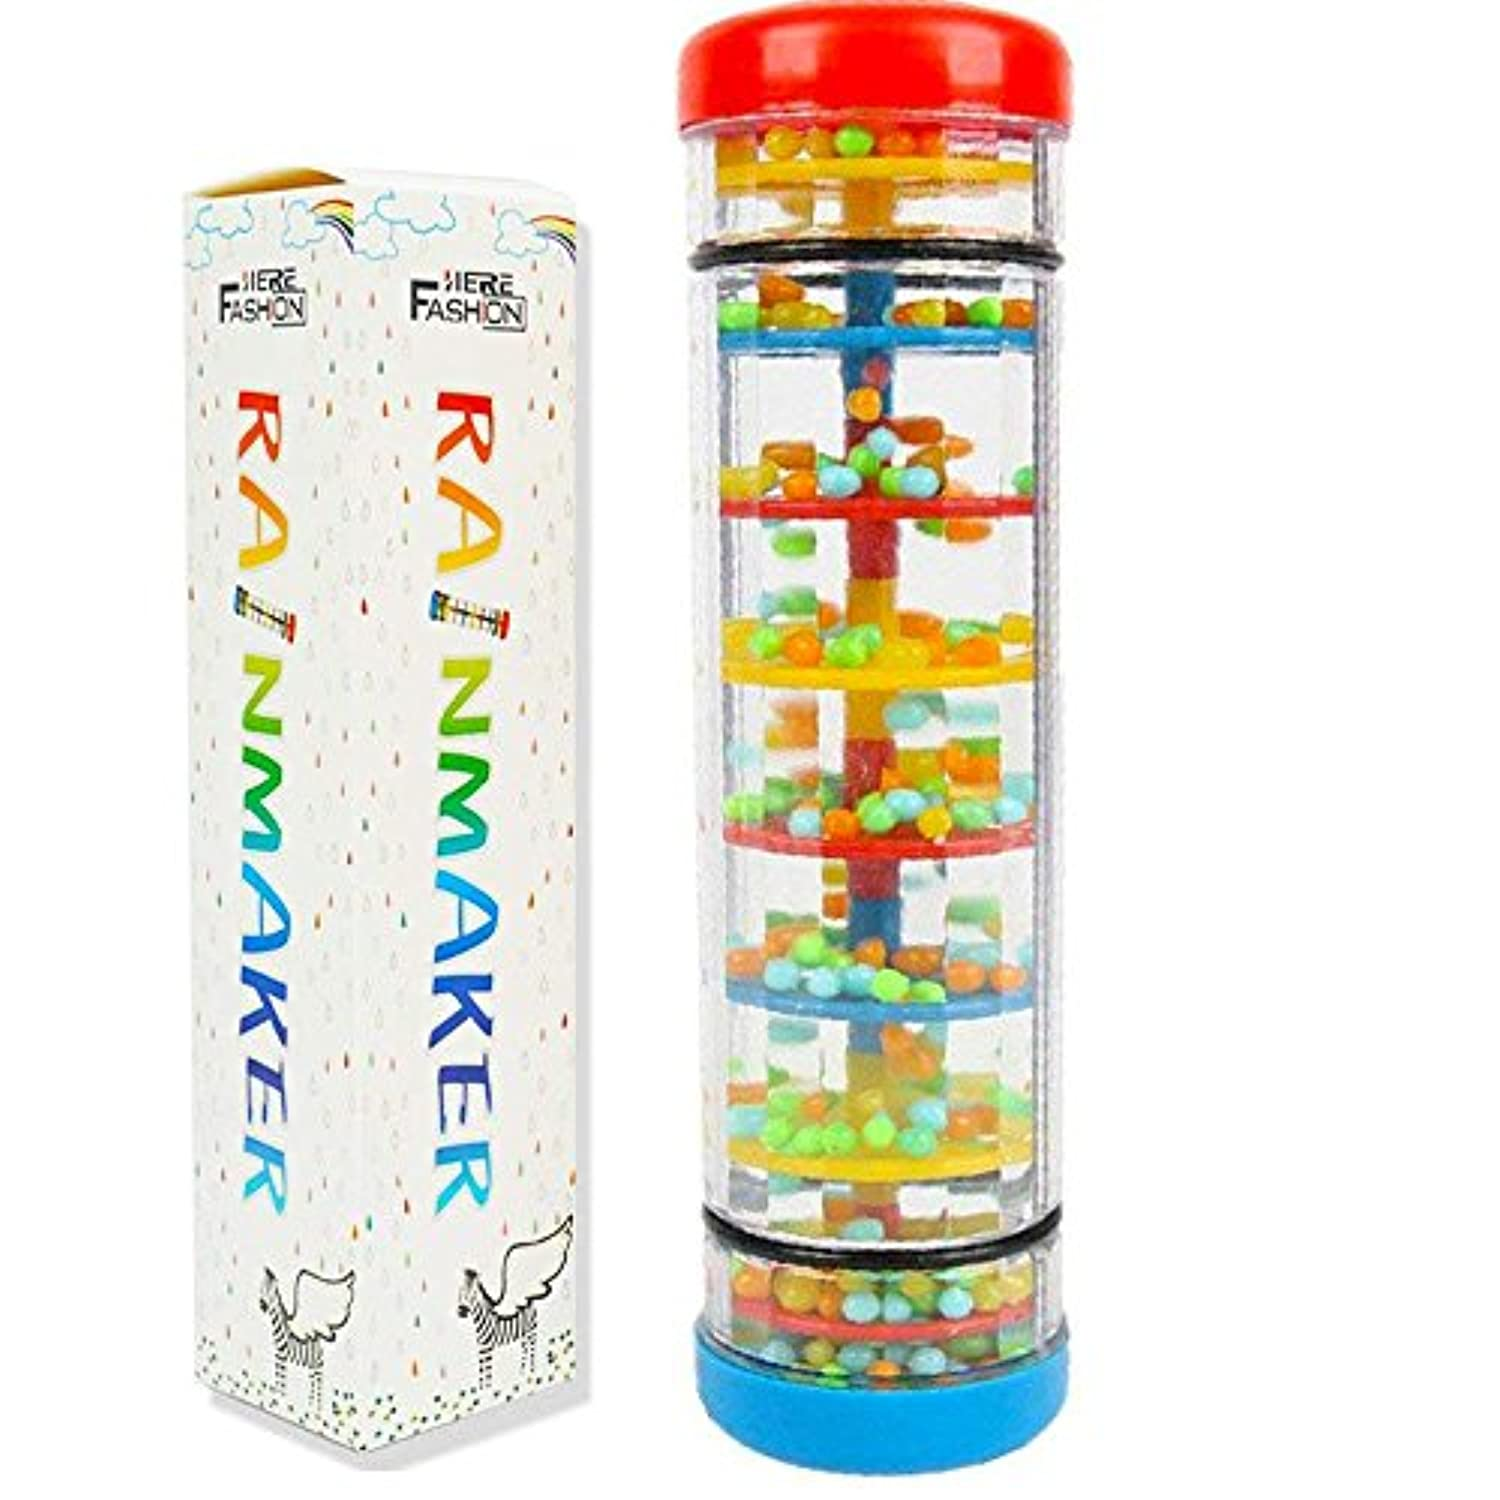 (20cm ) - Here Fashion Baby Early Education 20cm Mini Rainmaker Tube Shaker Music Sensory Auditory Instrument Toy